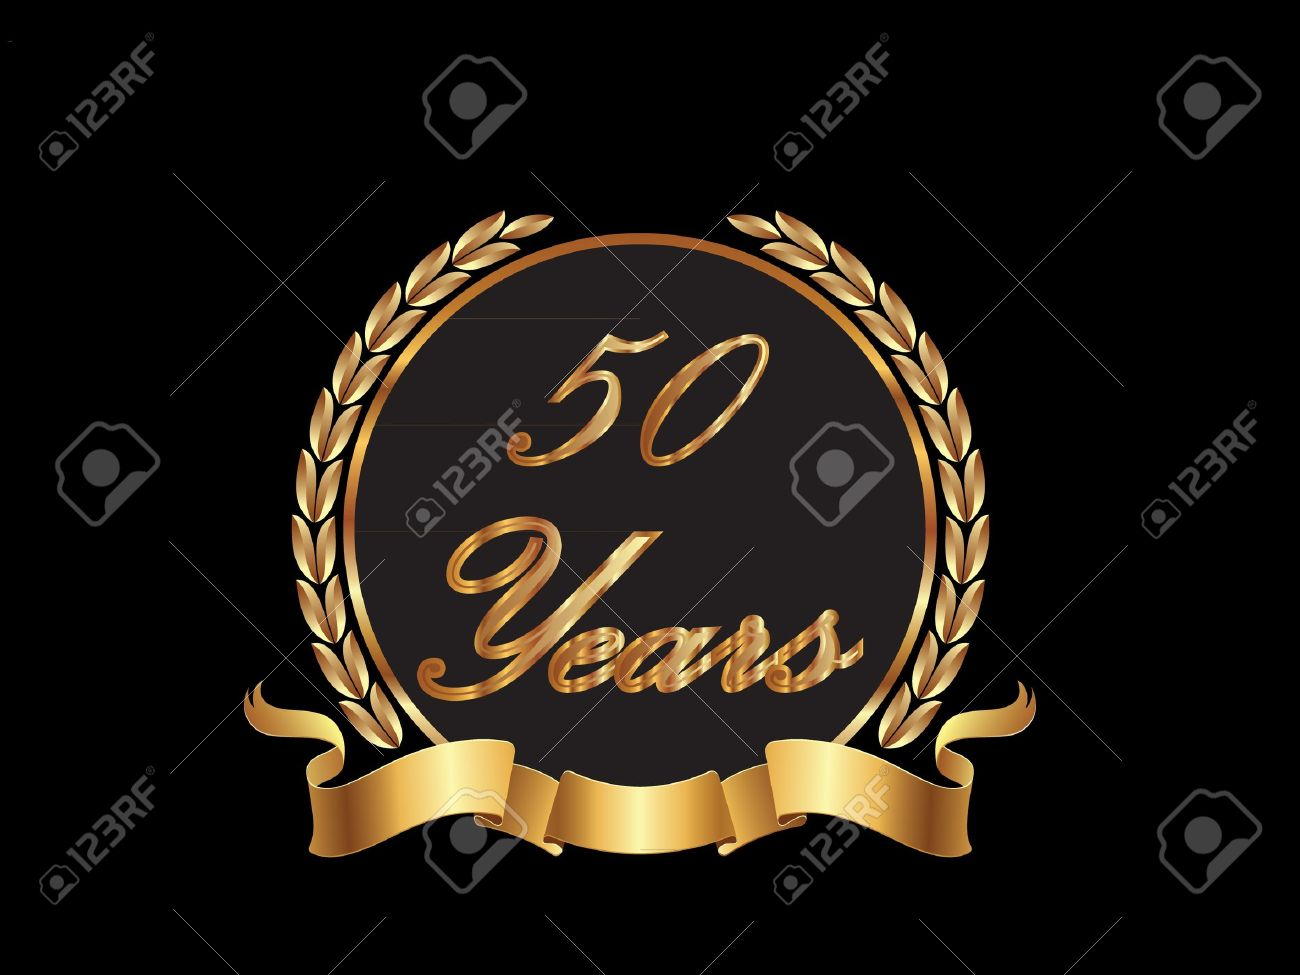 Years in gold royalty free cliparts vectors and stock